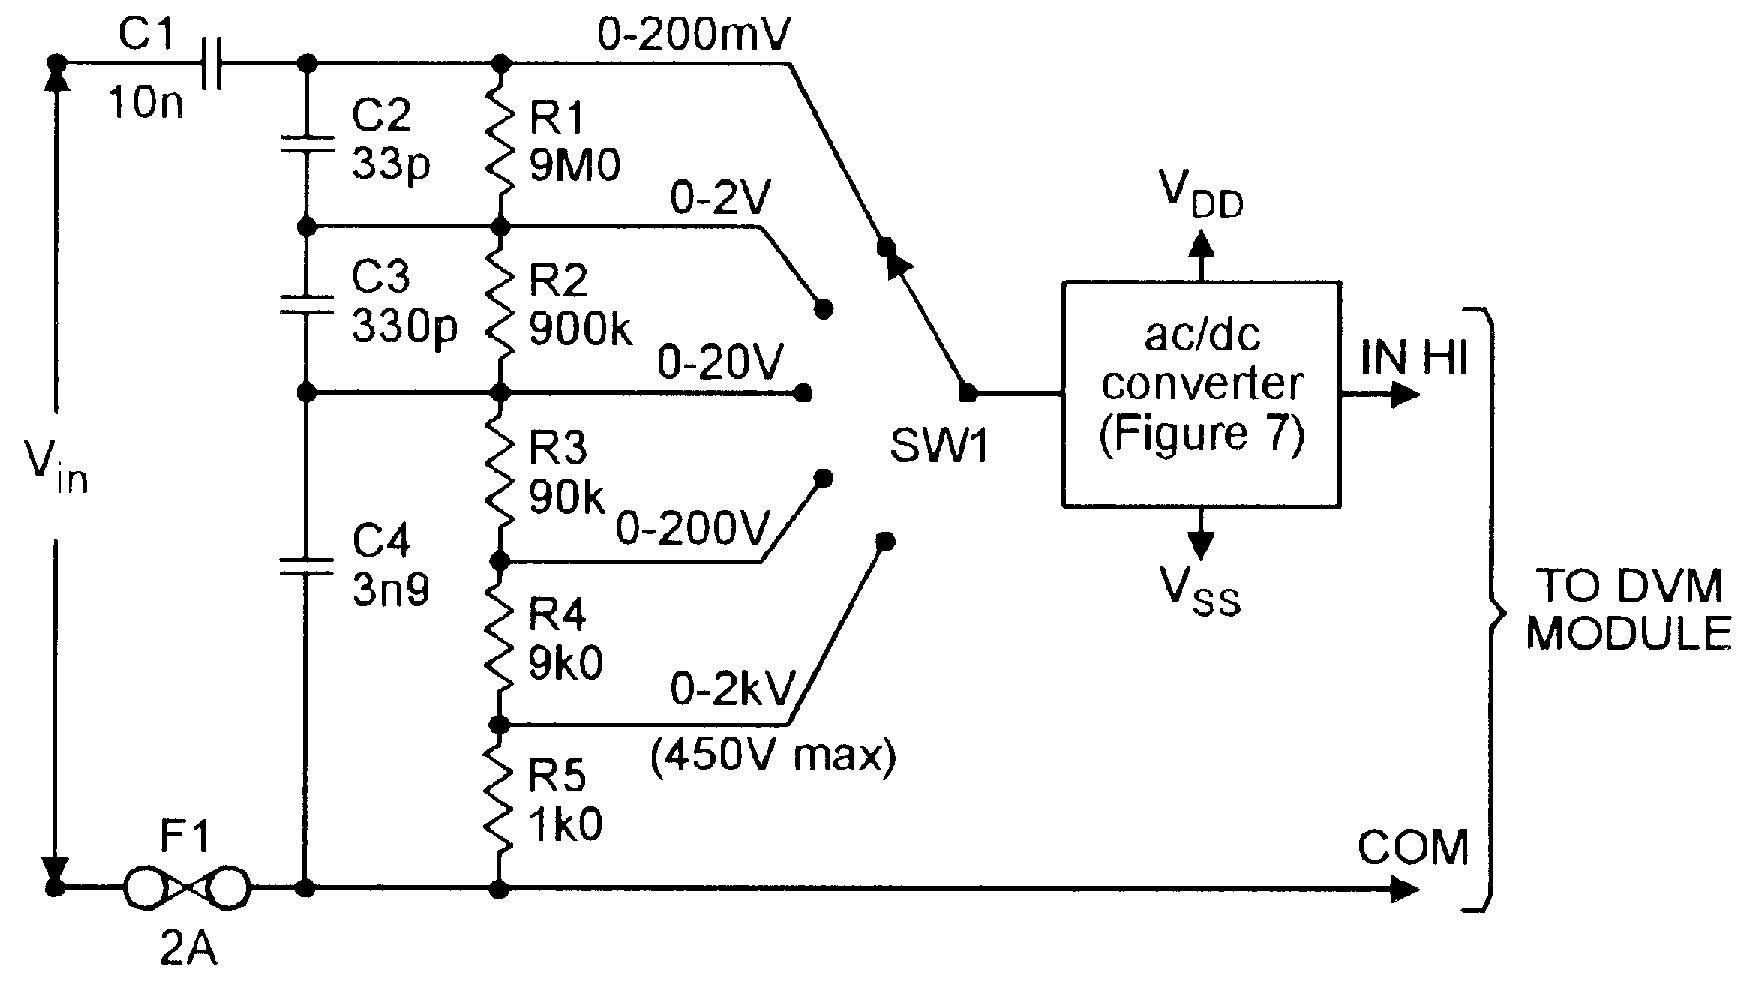 Op Amp Cookbook Part 4 Nuts Volts Magazine Notes And Details Of The Diode Full Wave Rectifier Circuit Often Figure 8 Five Range Ac Voltmeter Converter For Use With Dvm Modules